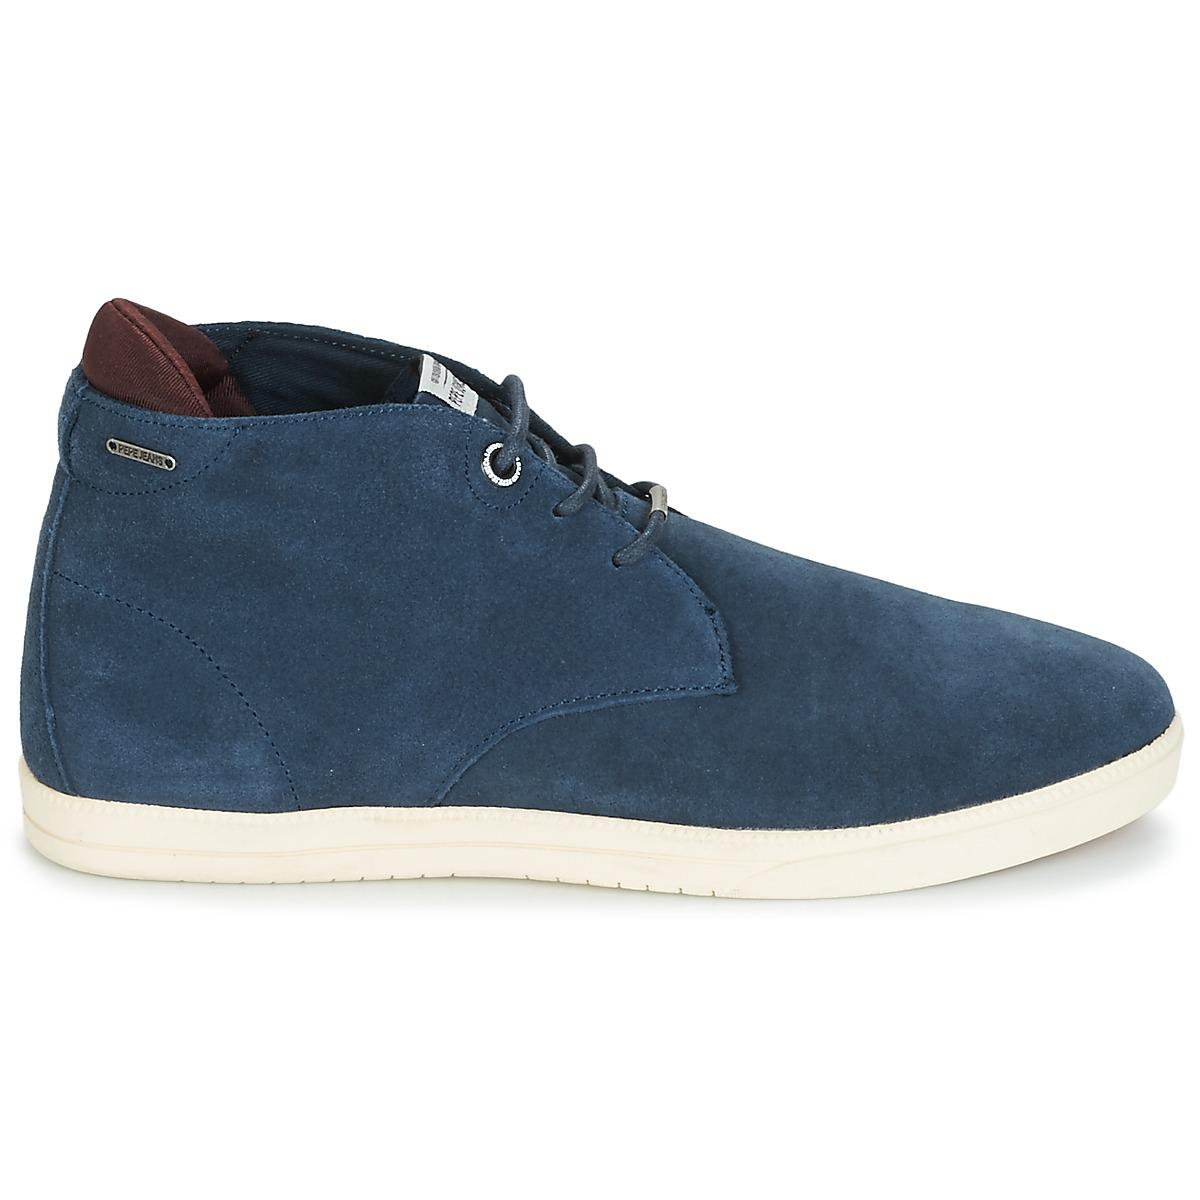 fa93b7390e Pepe Jeans Bolton Shoes (high-top Trainers) in Blue for Men - Lyst